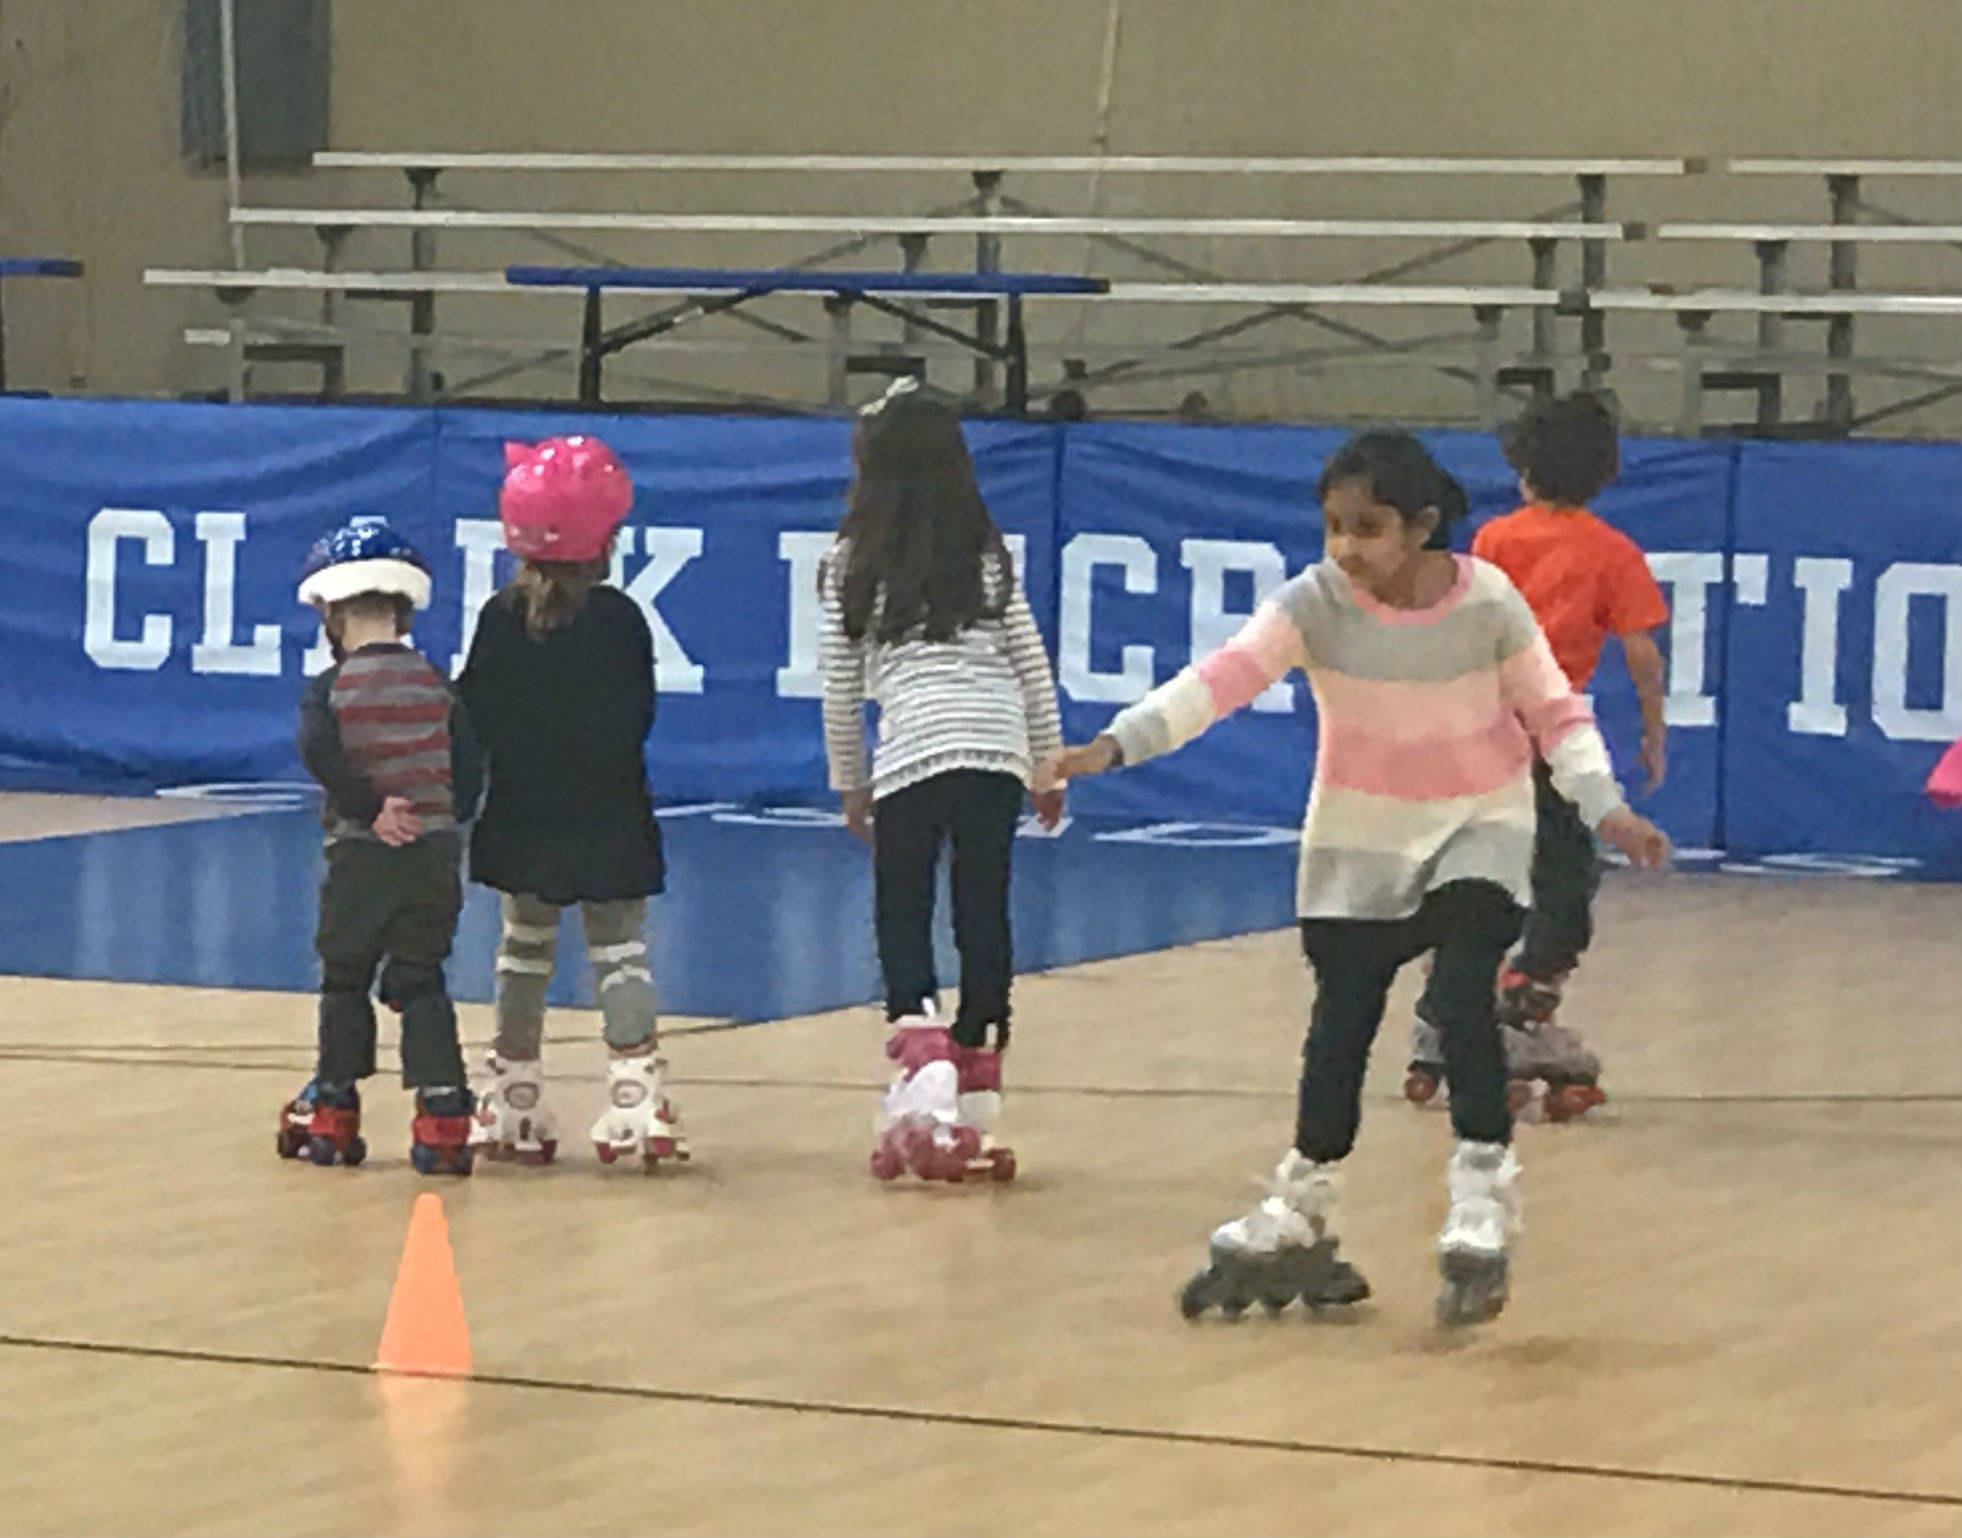 Roller skating rink kendall park nj - Clark Youth Enjoy Friday Night Roller Skating At The Clark Recreation Center Stop By From 6 P M Until 8 P M And Take A Twirl Around The Gym